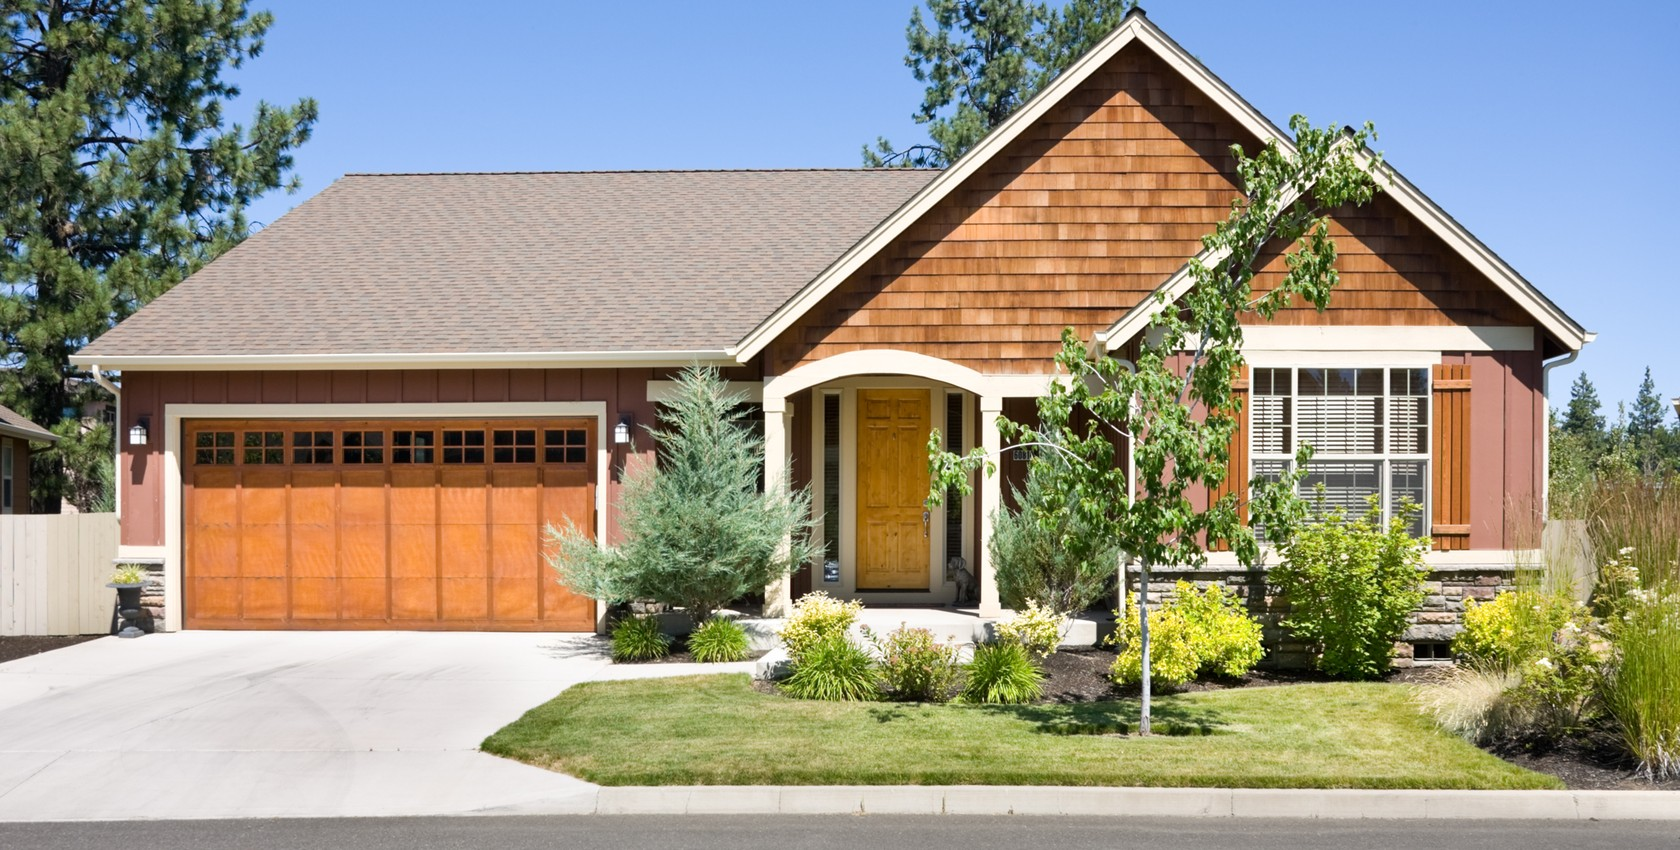 Image for Morton-Craftsman Plan with High Ceilings and Covered Porch-4258